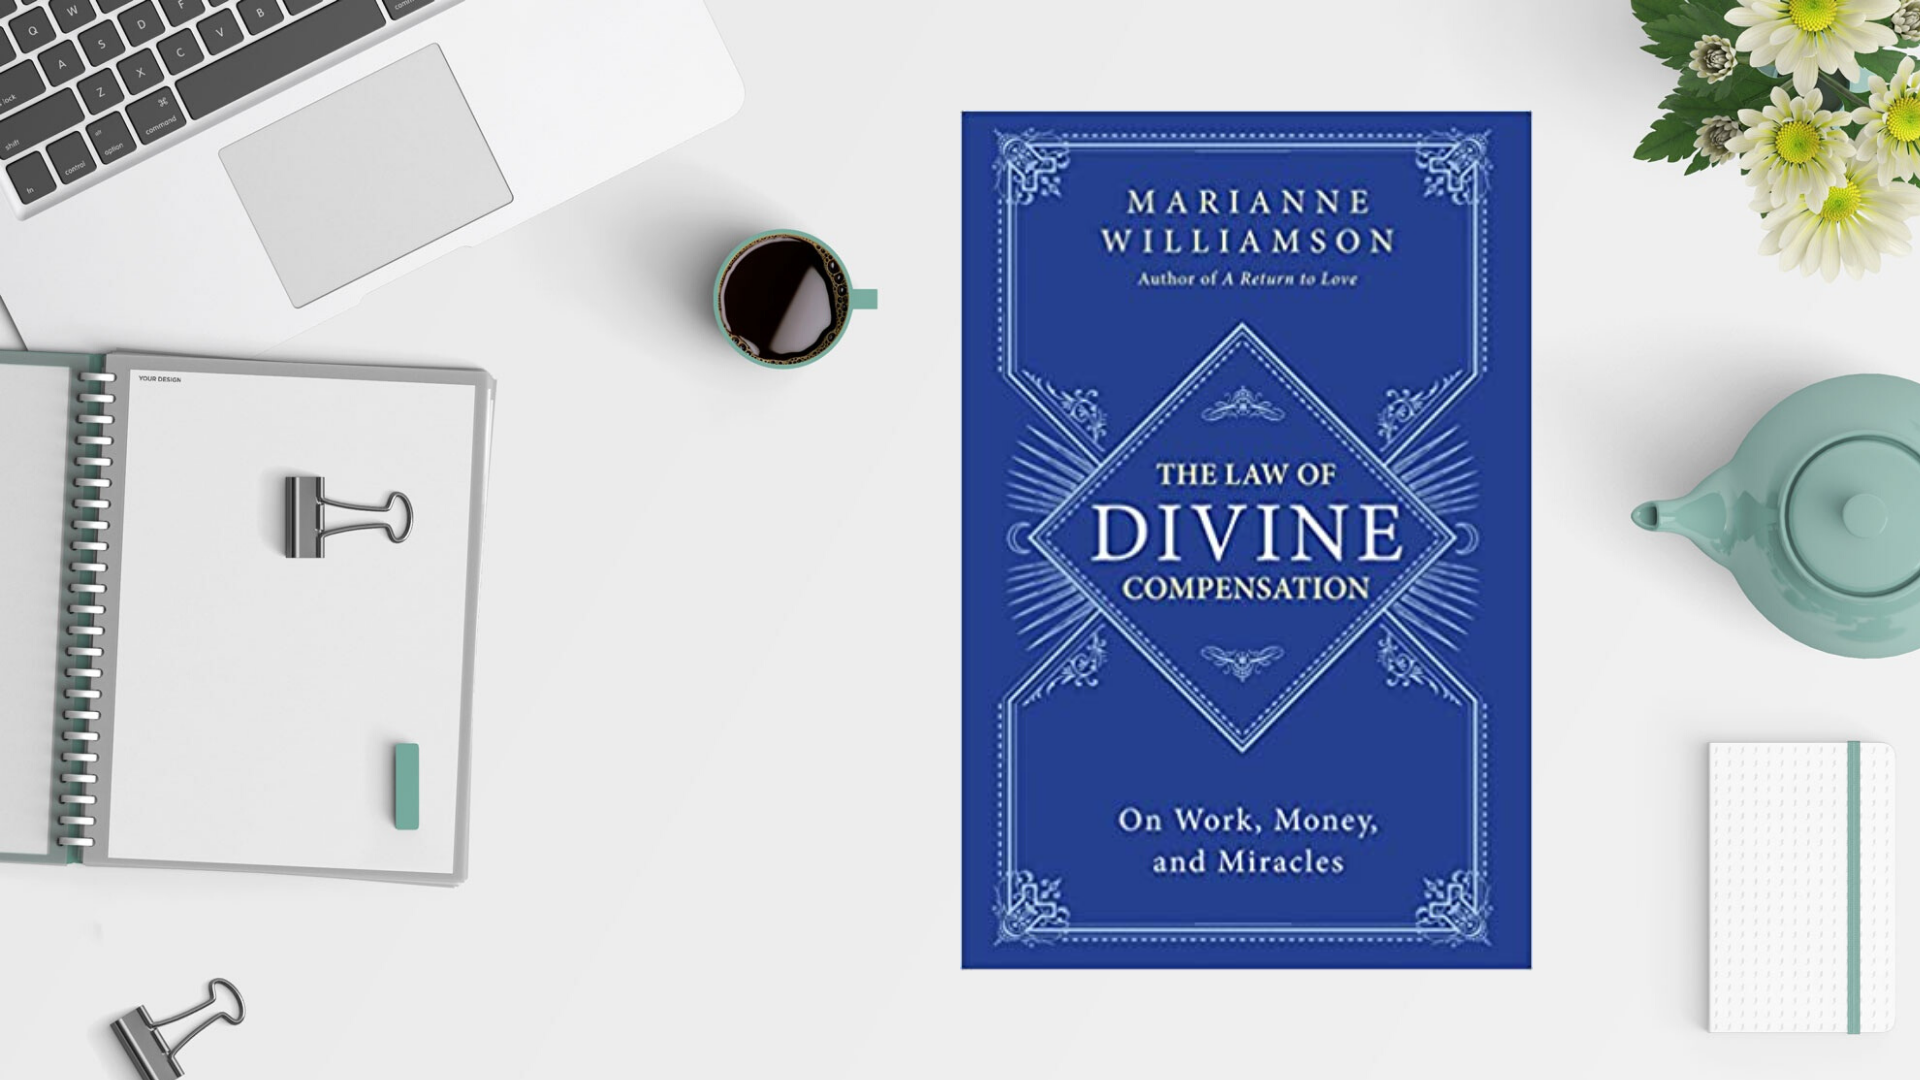 The Law of Divine Compensation book